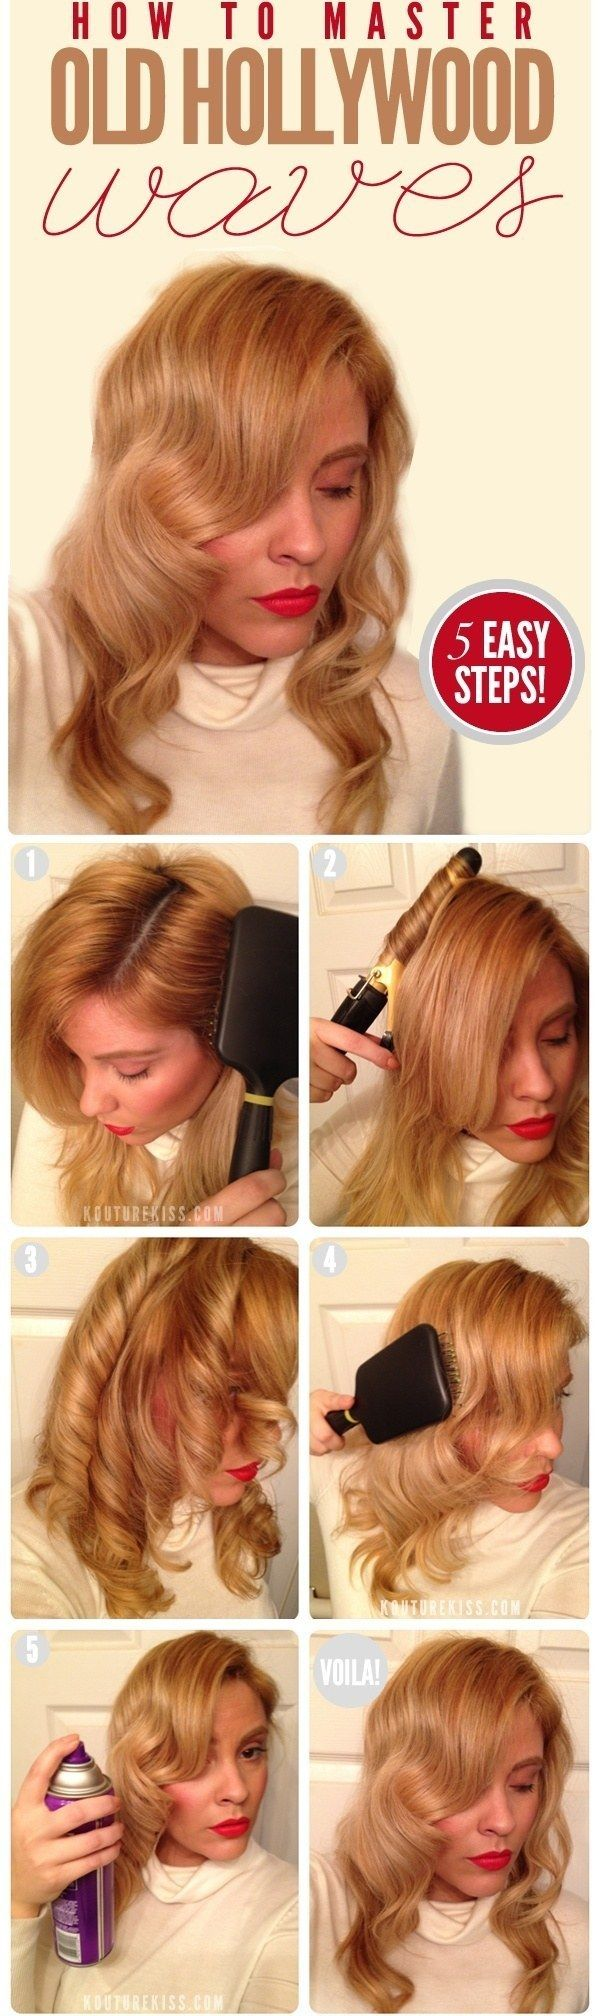 Lauren Bacall's Waves | 27 Gorgeously Dreamy Vintage-Inspired Hair Tutorials